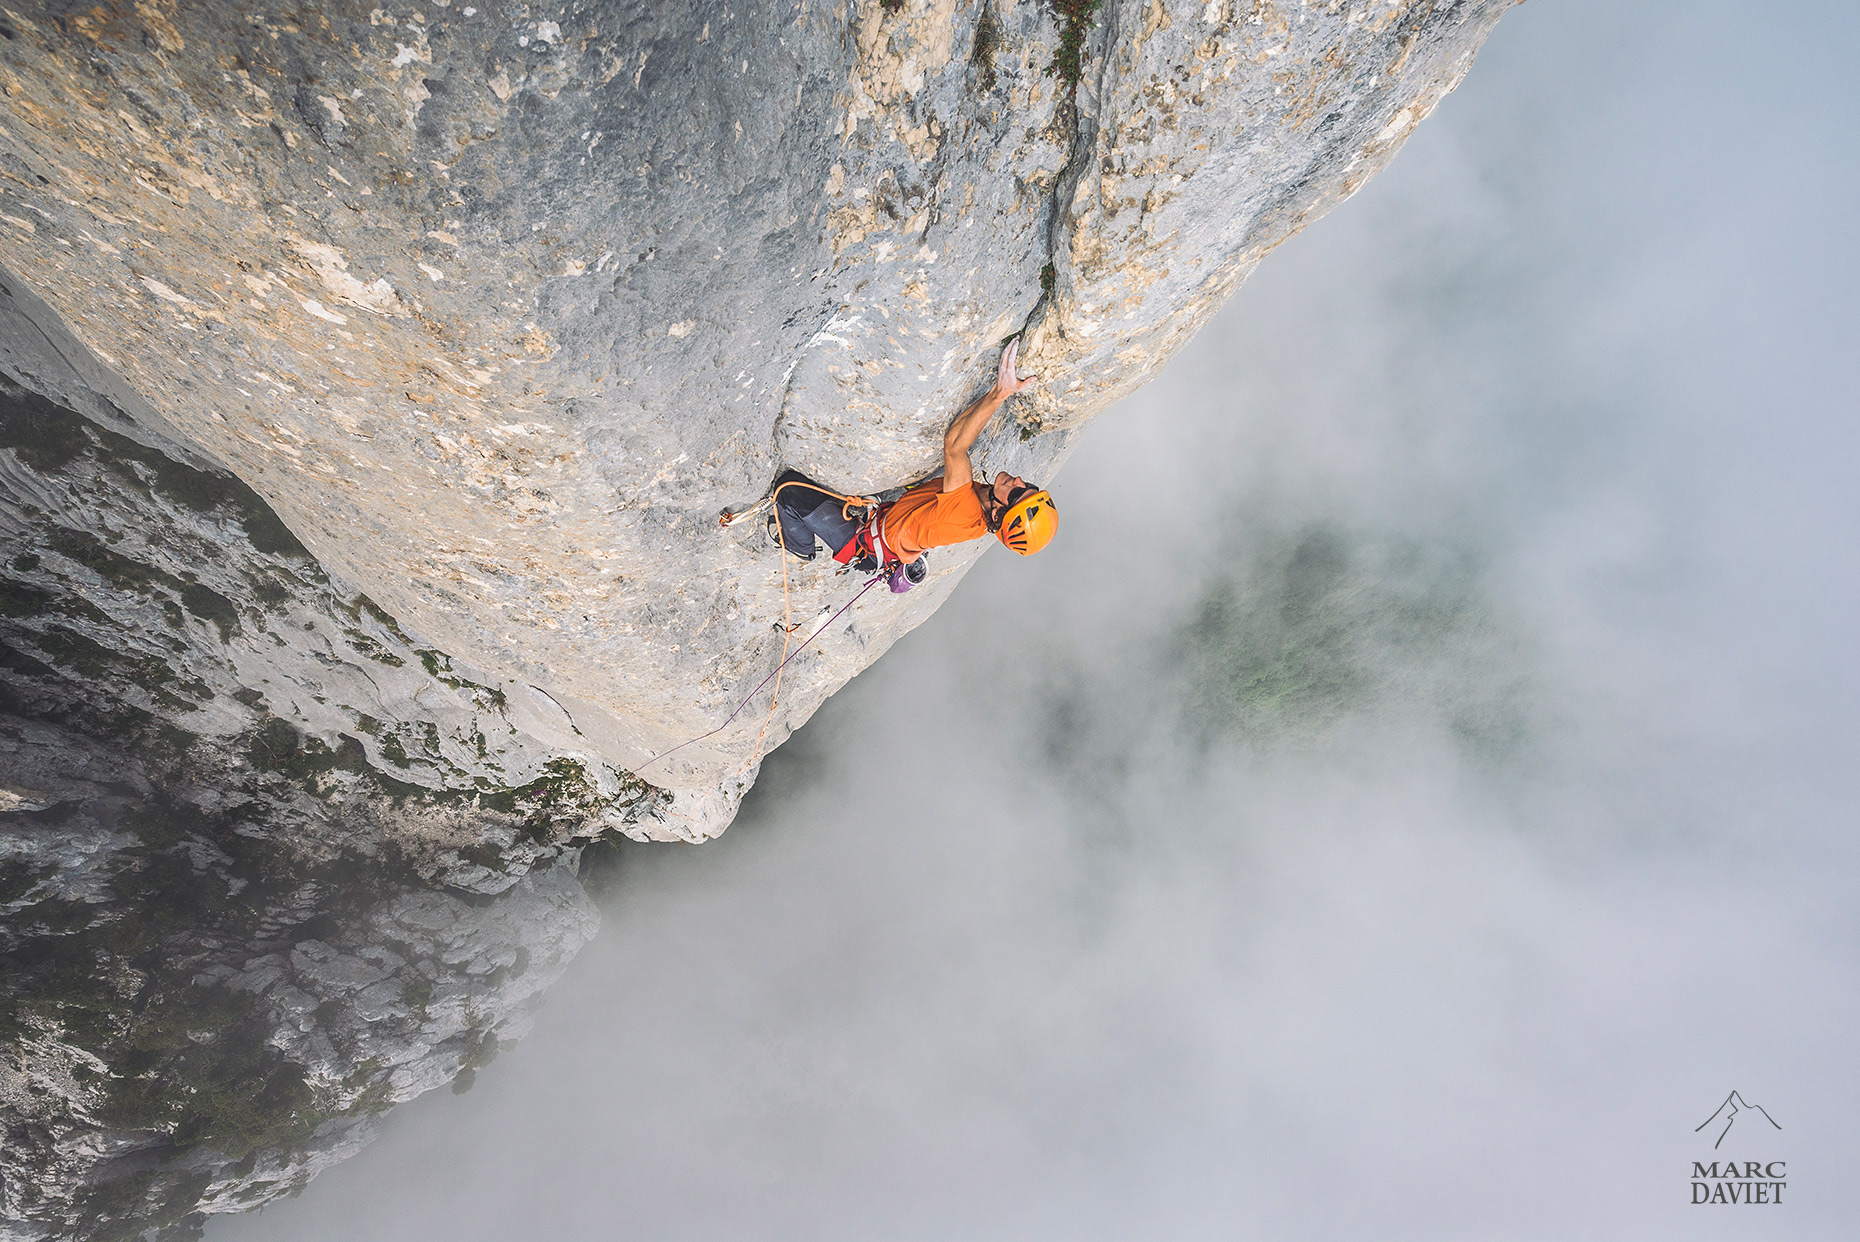 Climbing in the clouds - Marc Daviet Photography